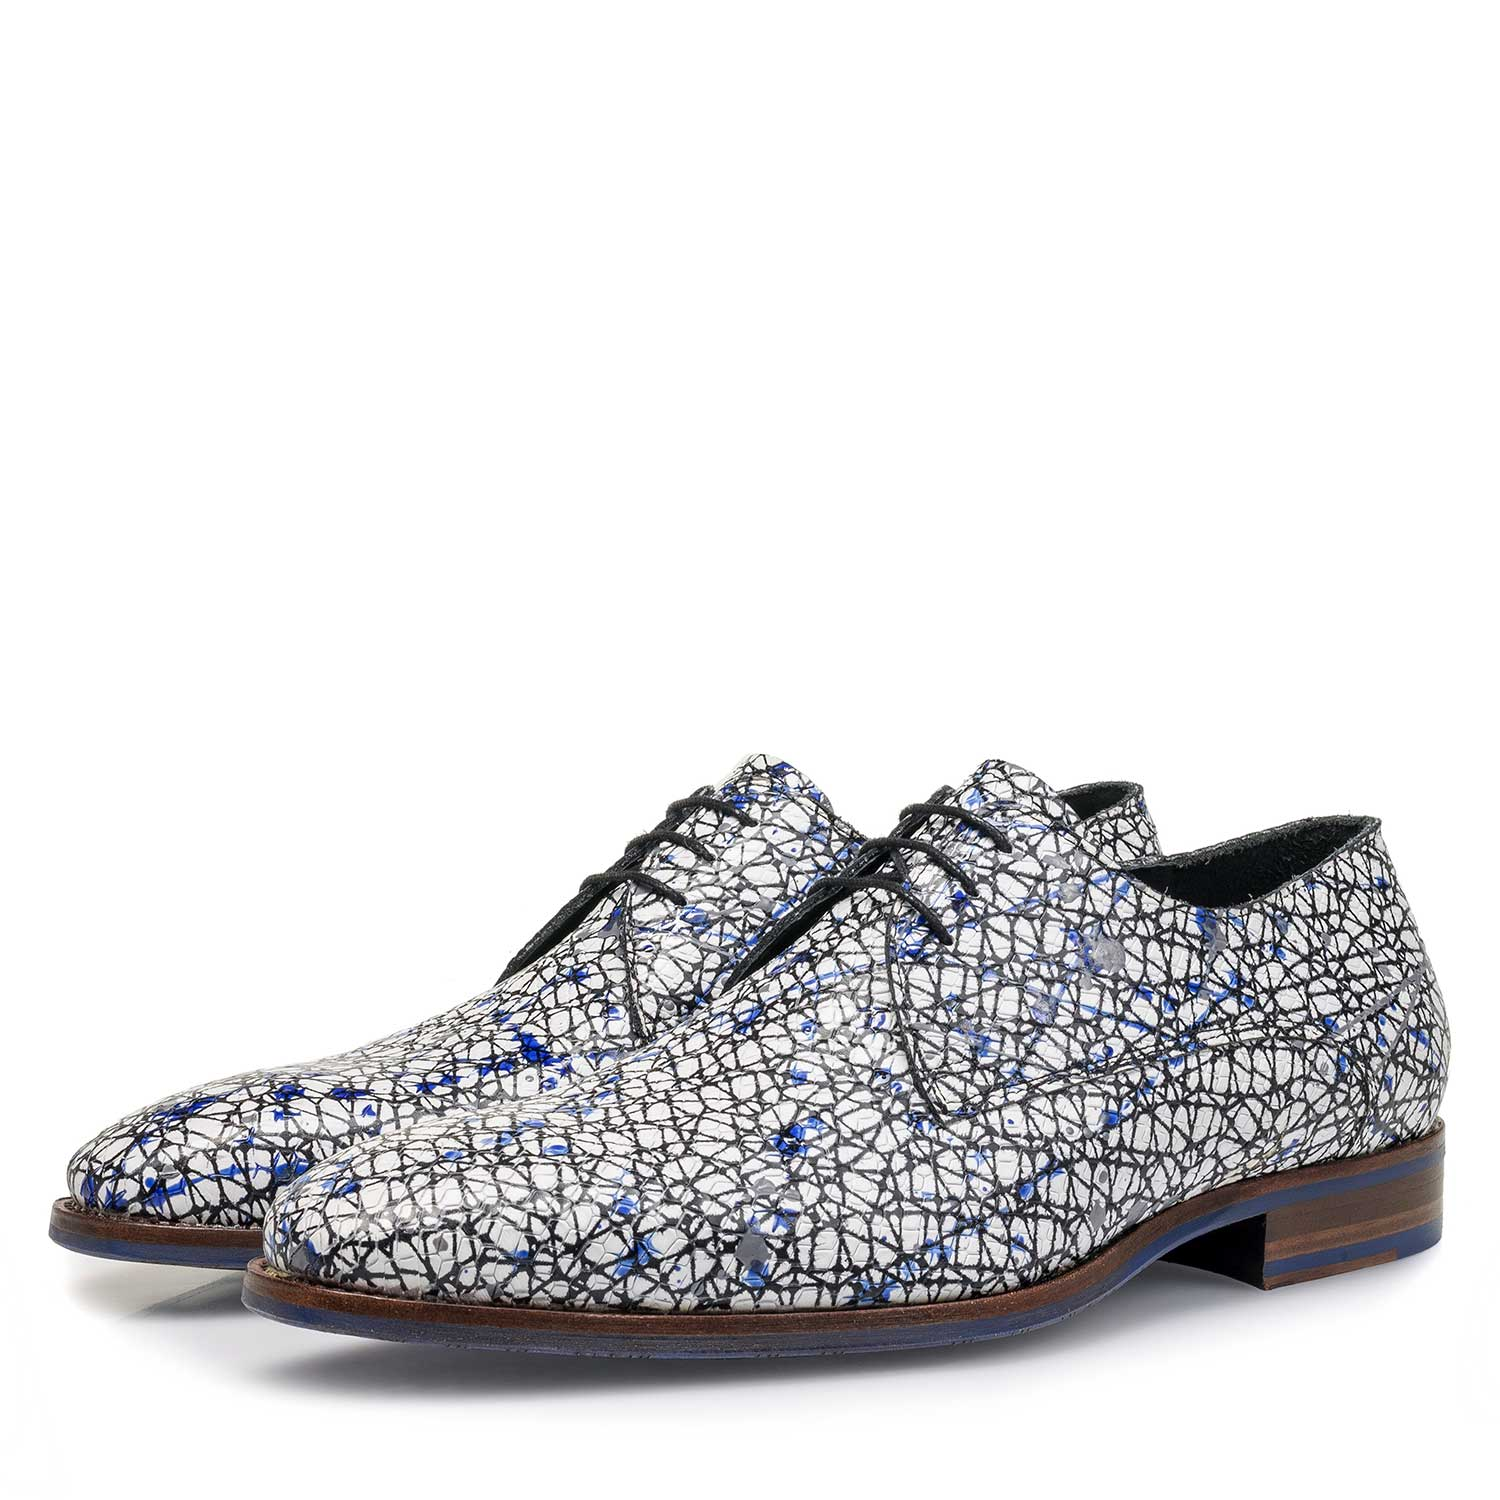 18091/00 - White printed calf leather lace shoe